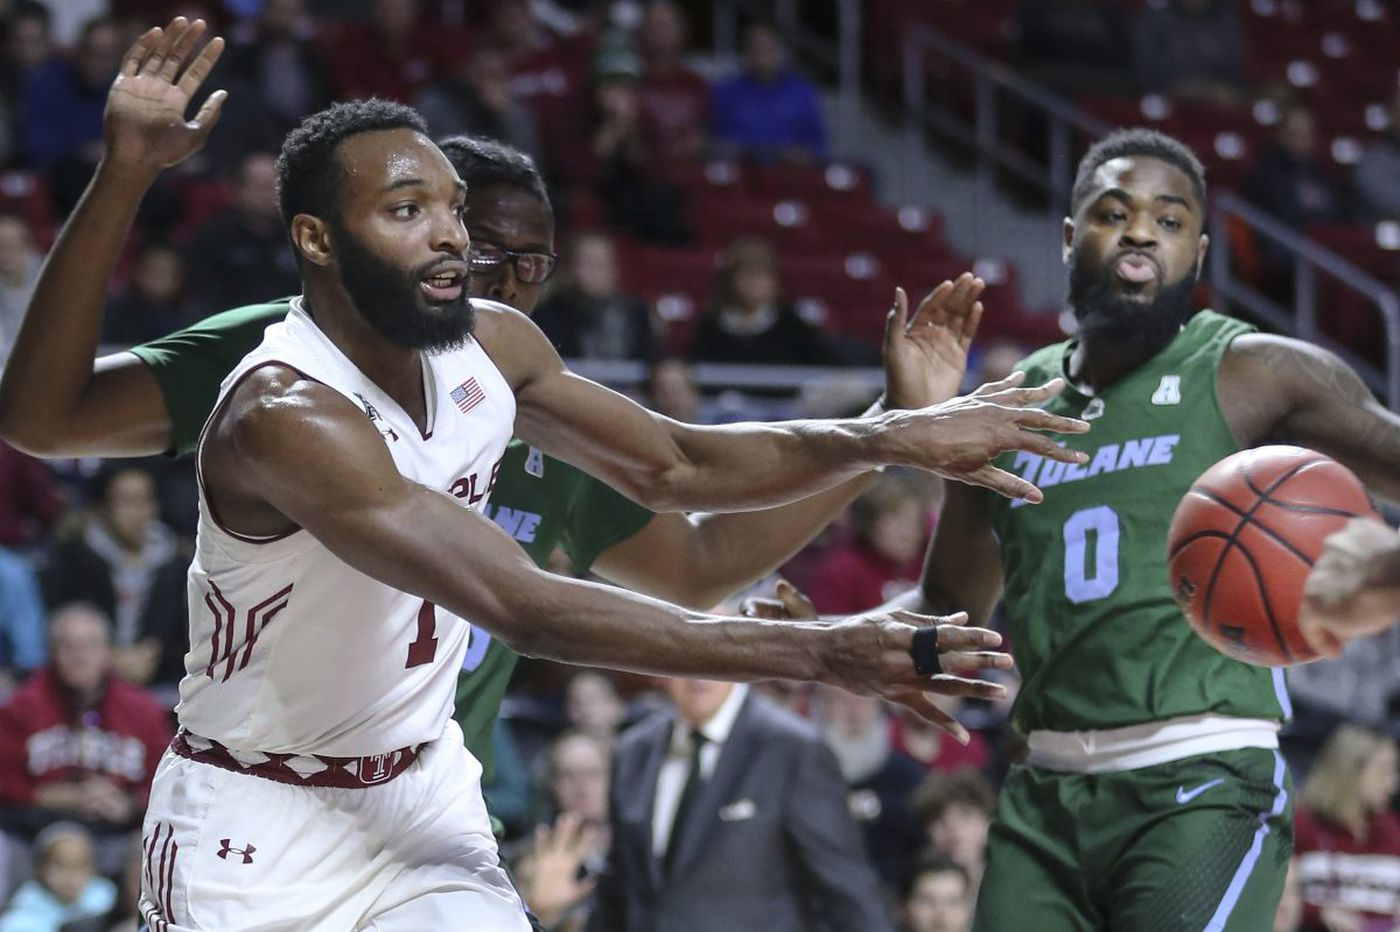 Temple loses by 10 to former doormat Tulane